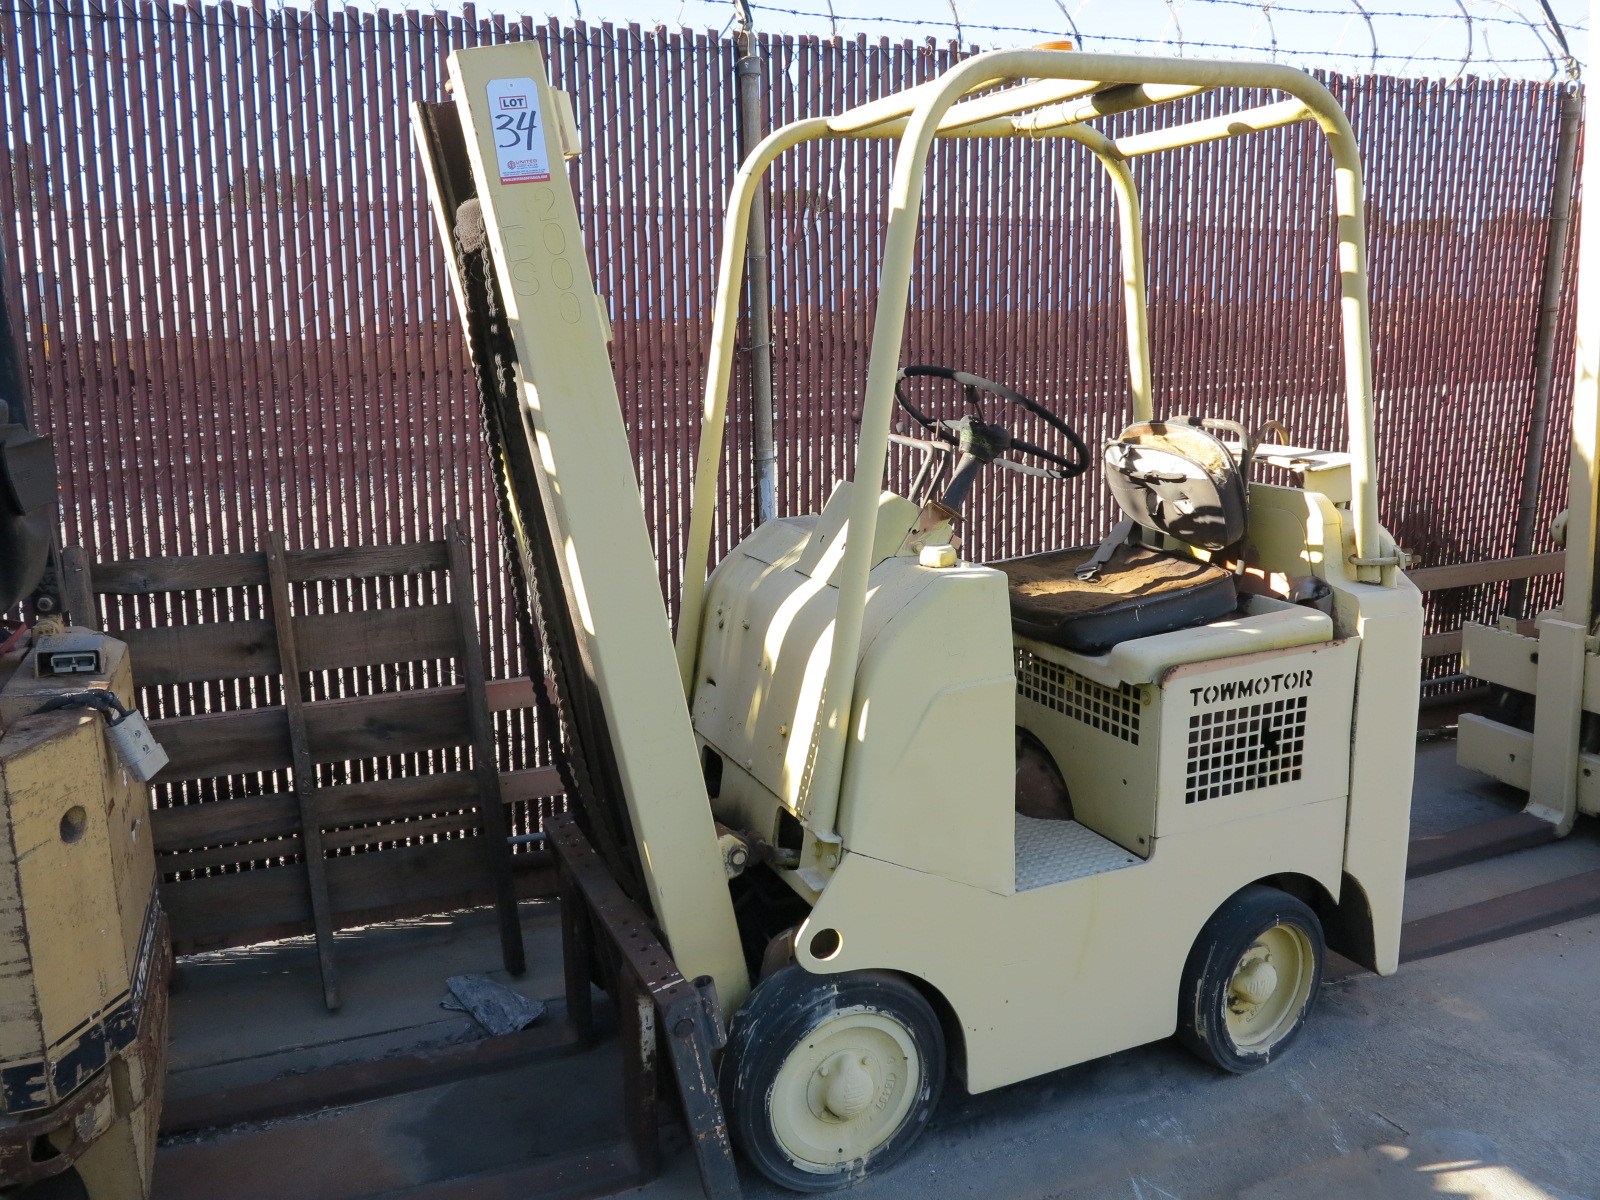 Lot 34 - TOWMOTOR 2,000 LB LP FORKLIFT, OUT OF SERVICE